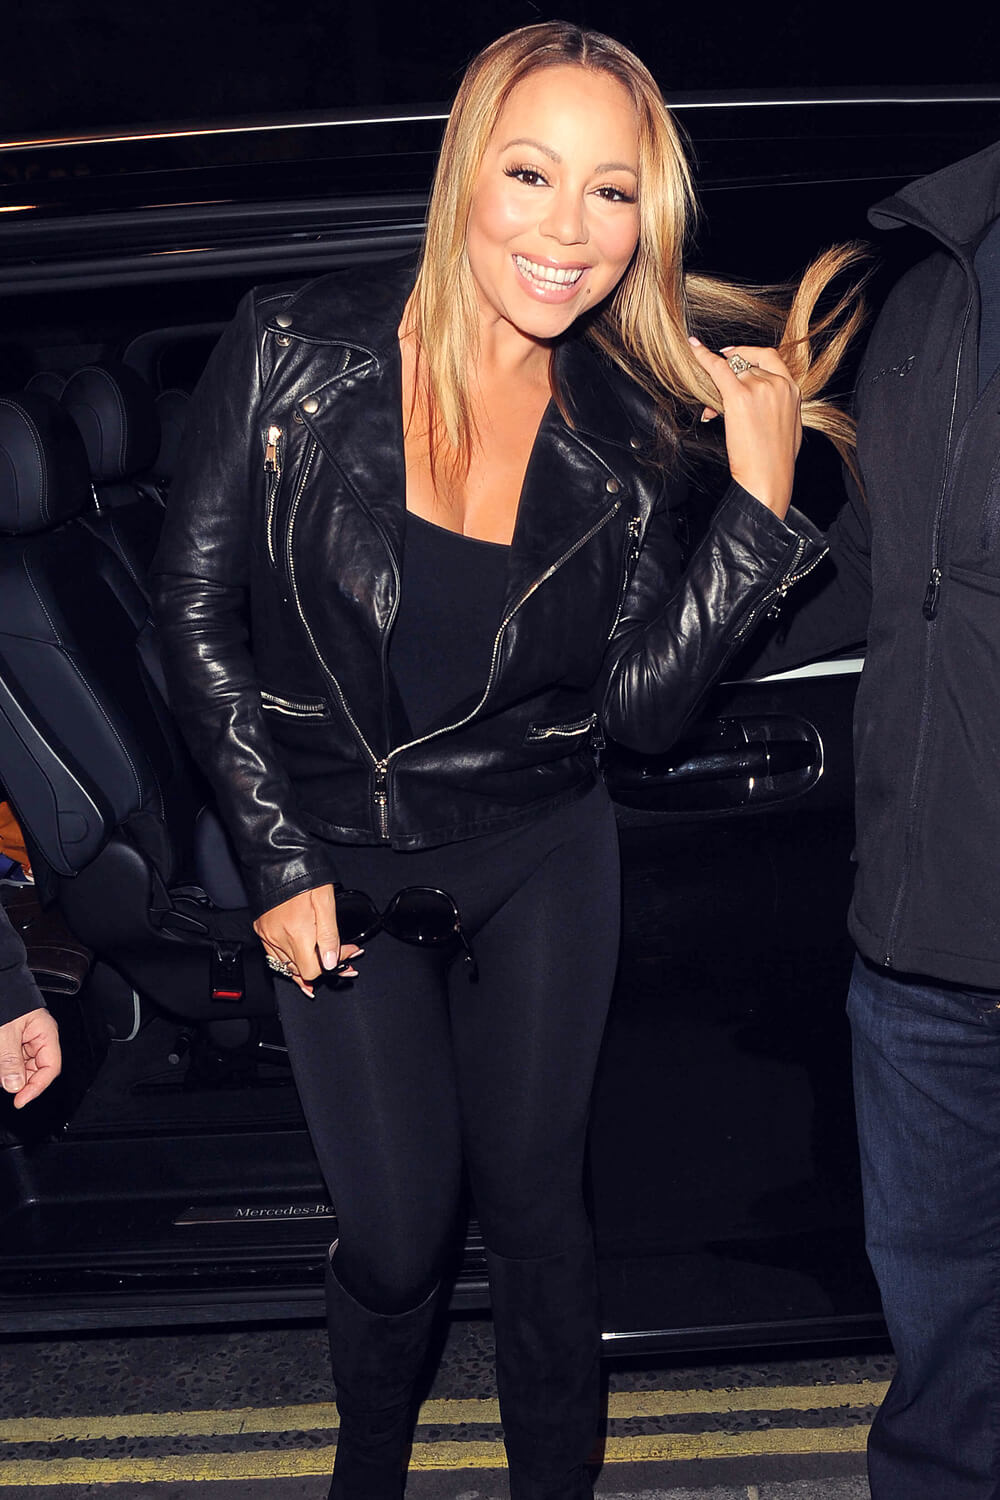 Mariah Carey Out In London Leather Celebrities